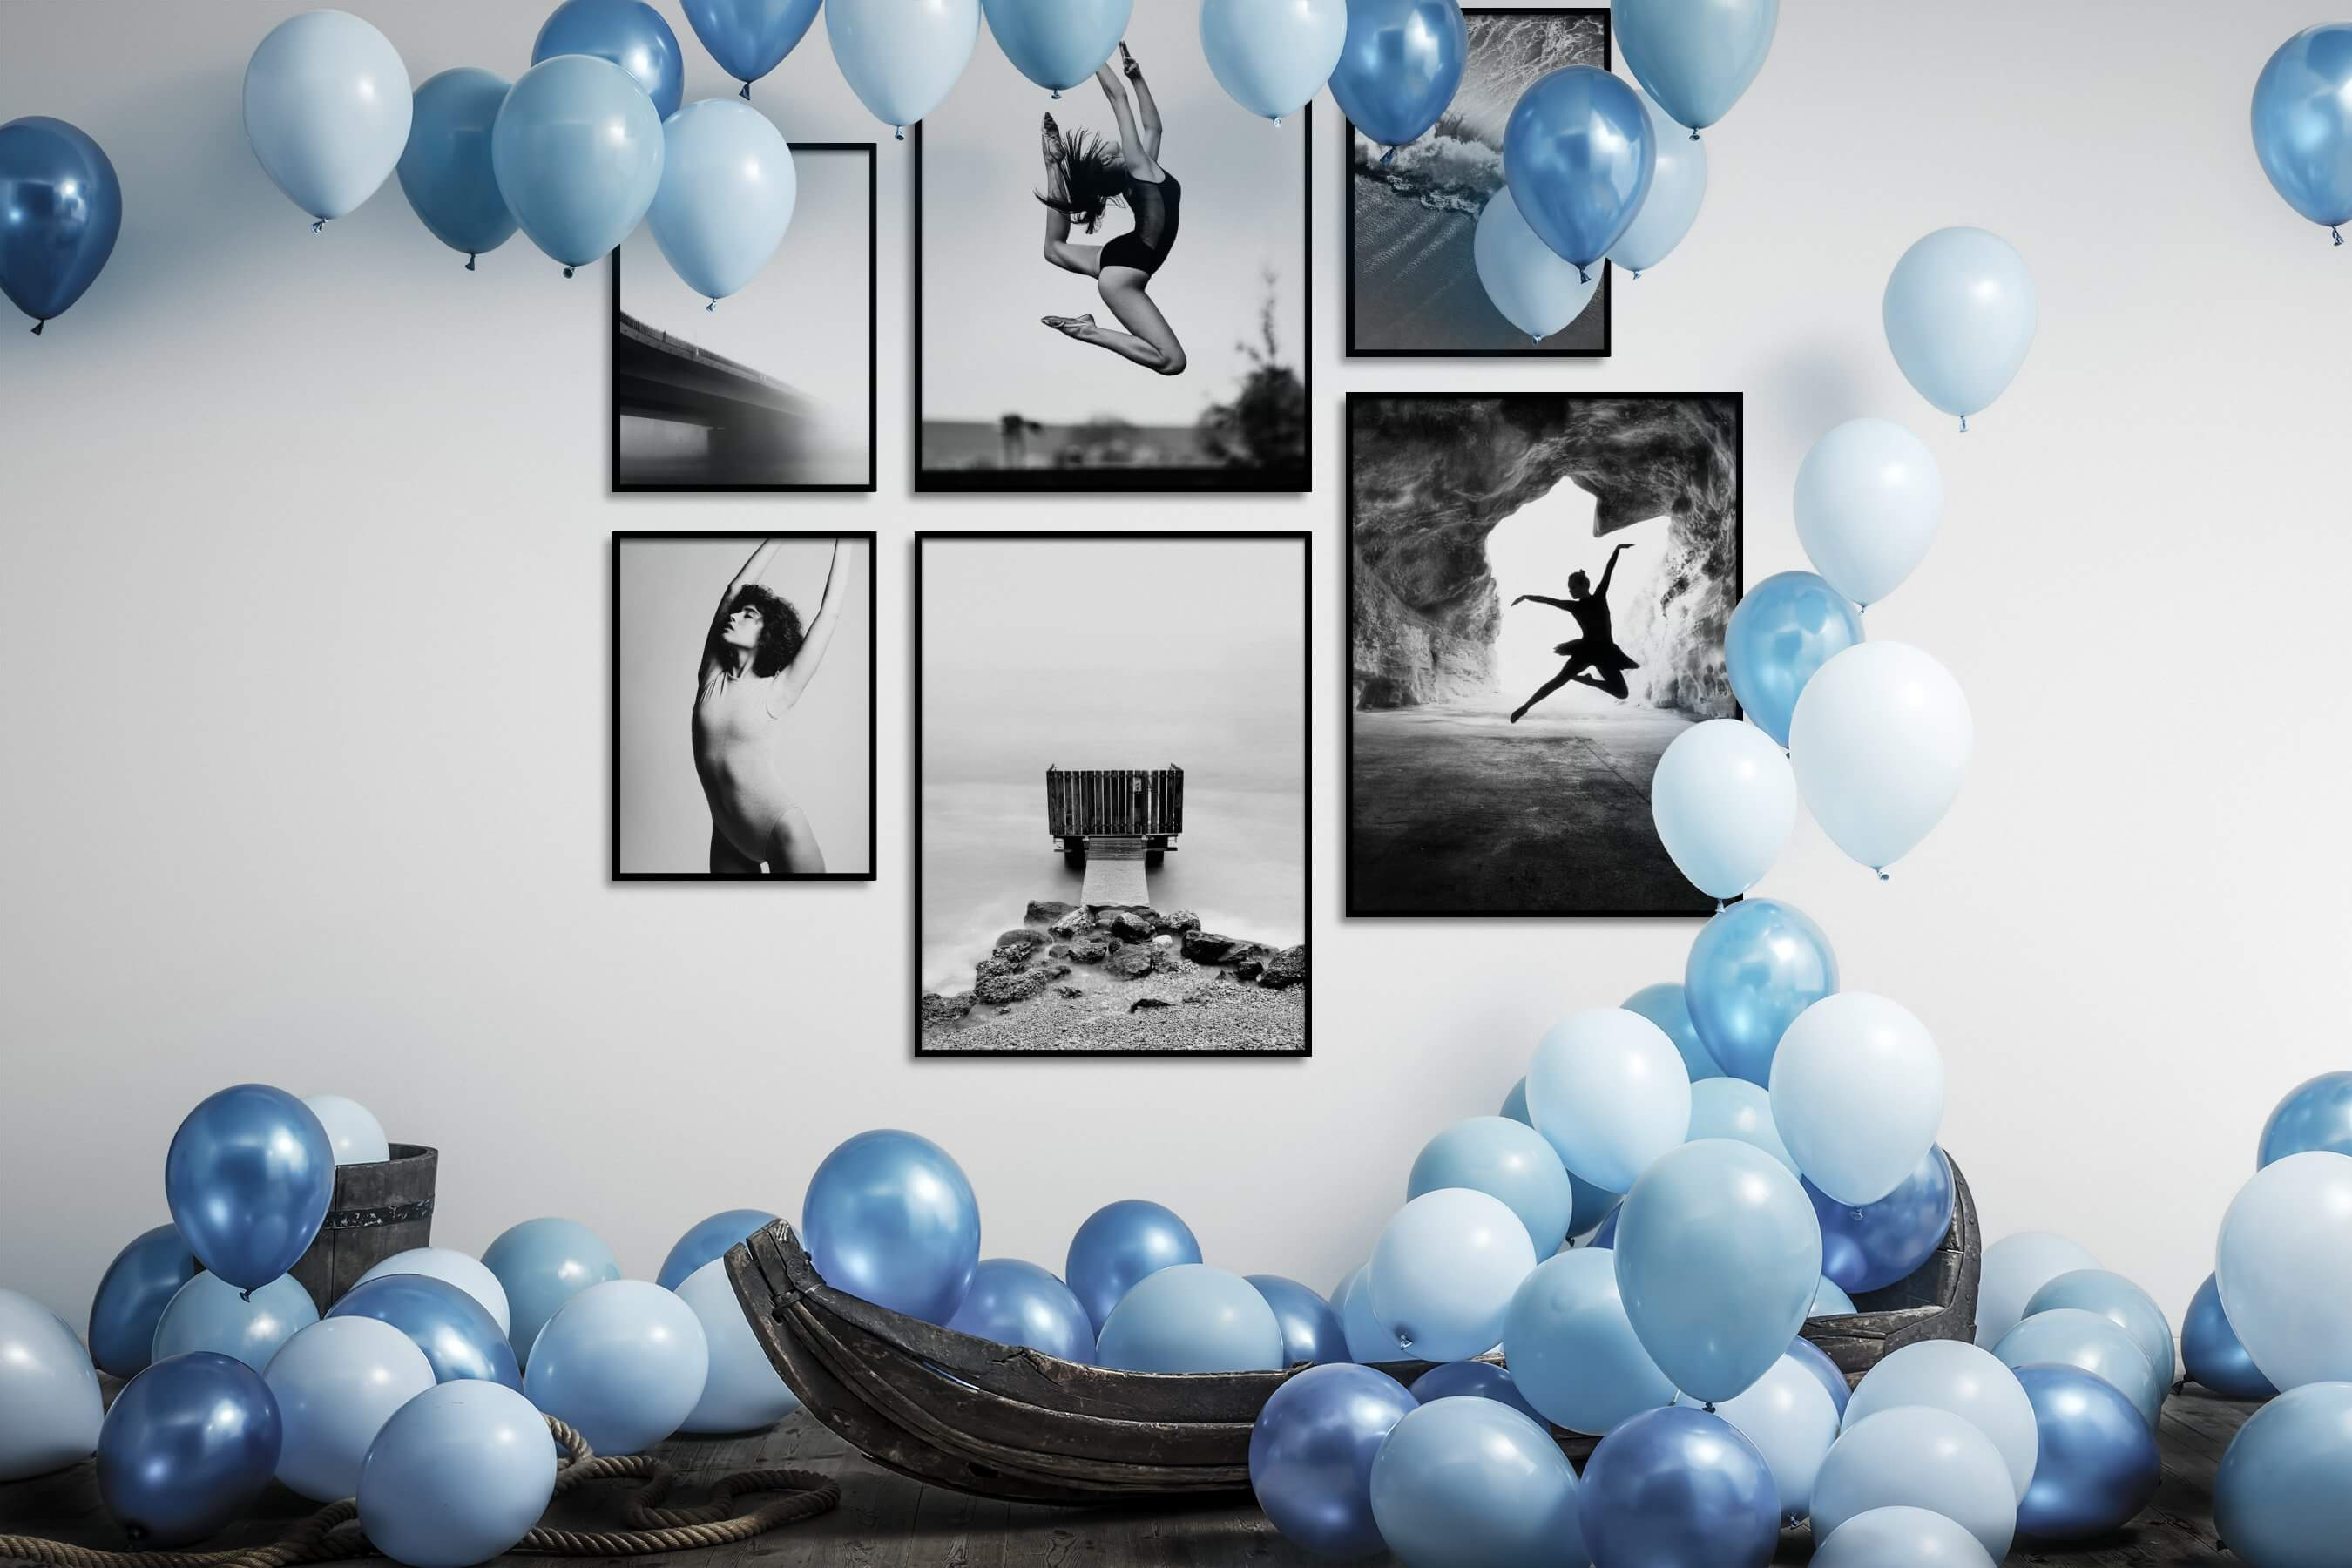 Gallery wall idea with six framed pictures arranged on a wall depicting Black & White, Bright Tones, For the Minimalist, Mindfulness, Fashion & Beauty, Beach & Water, and For the Moderate